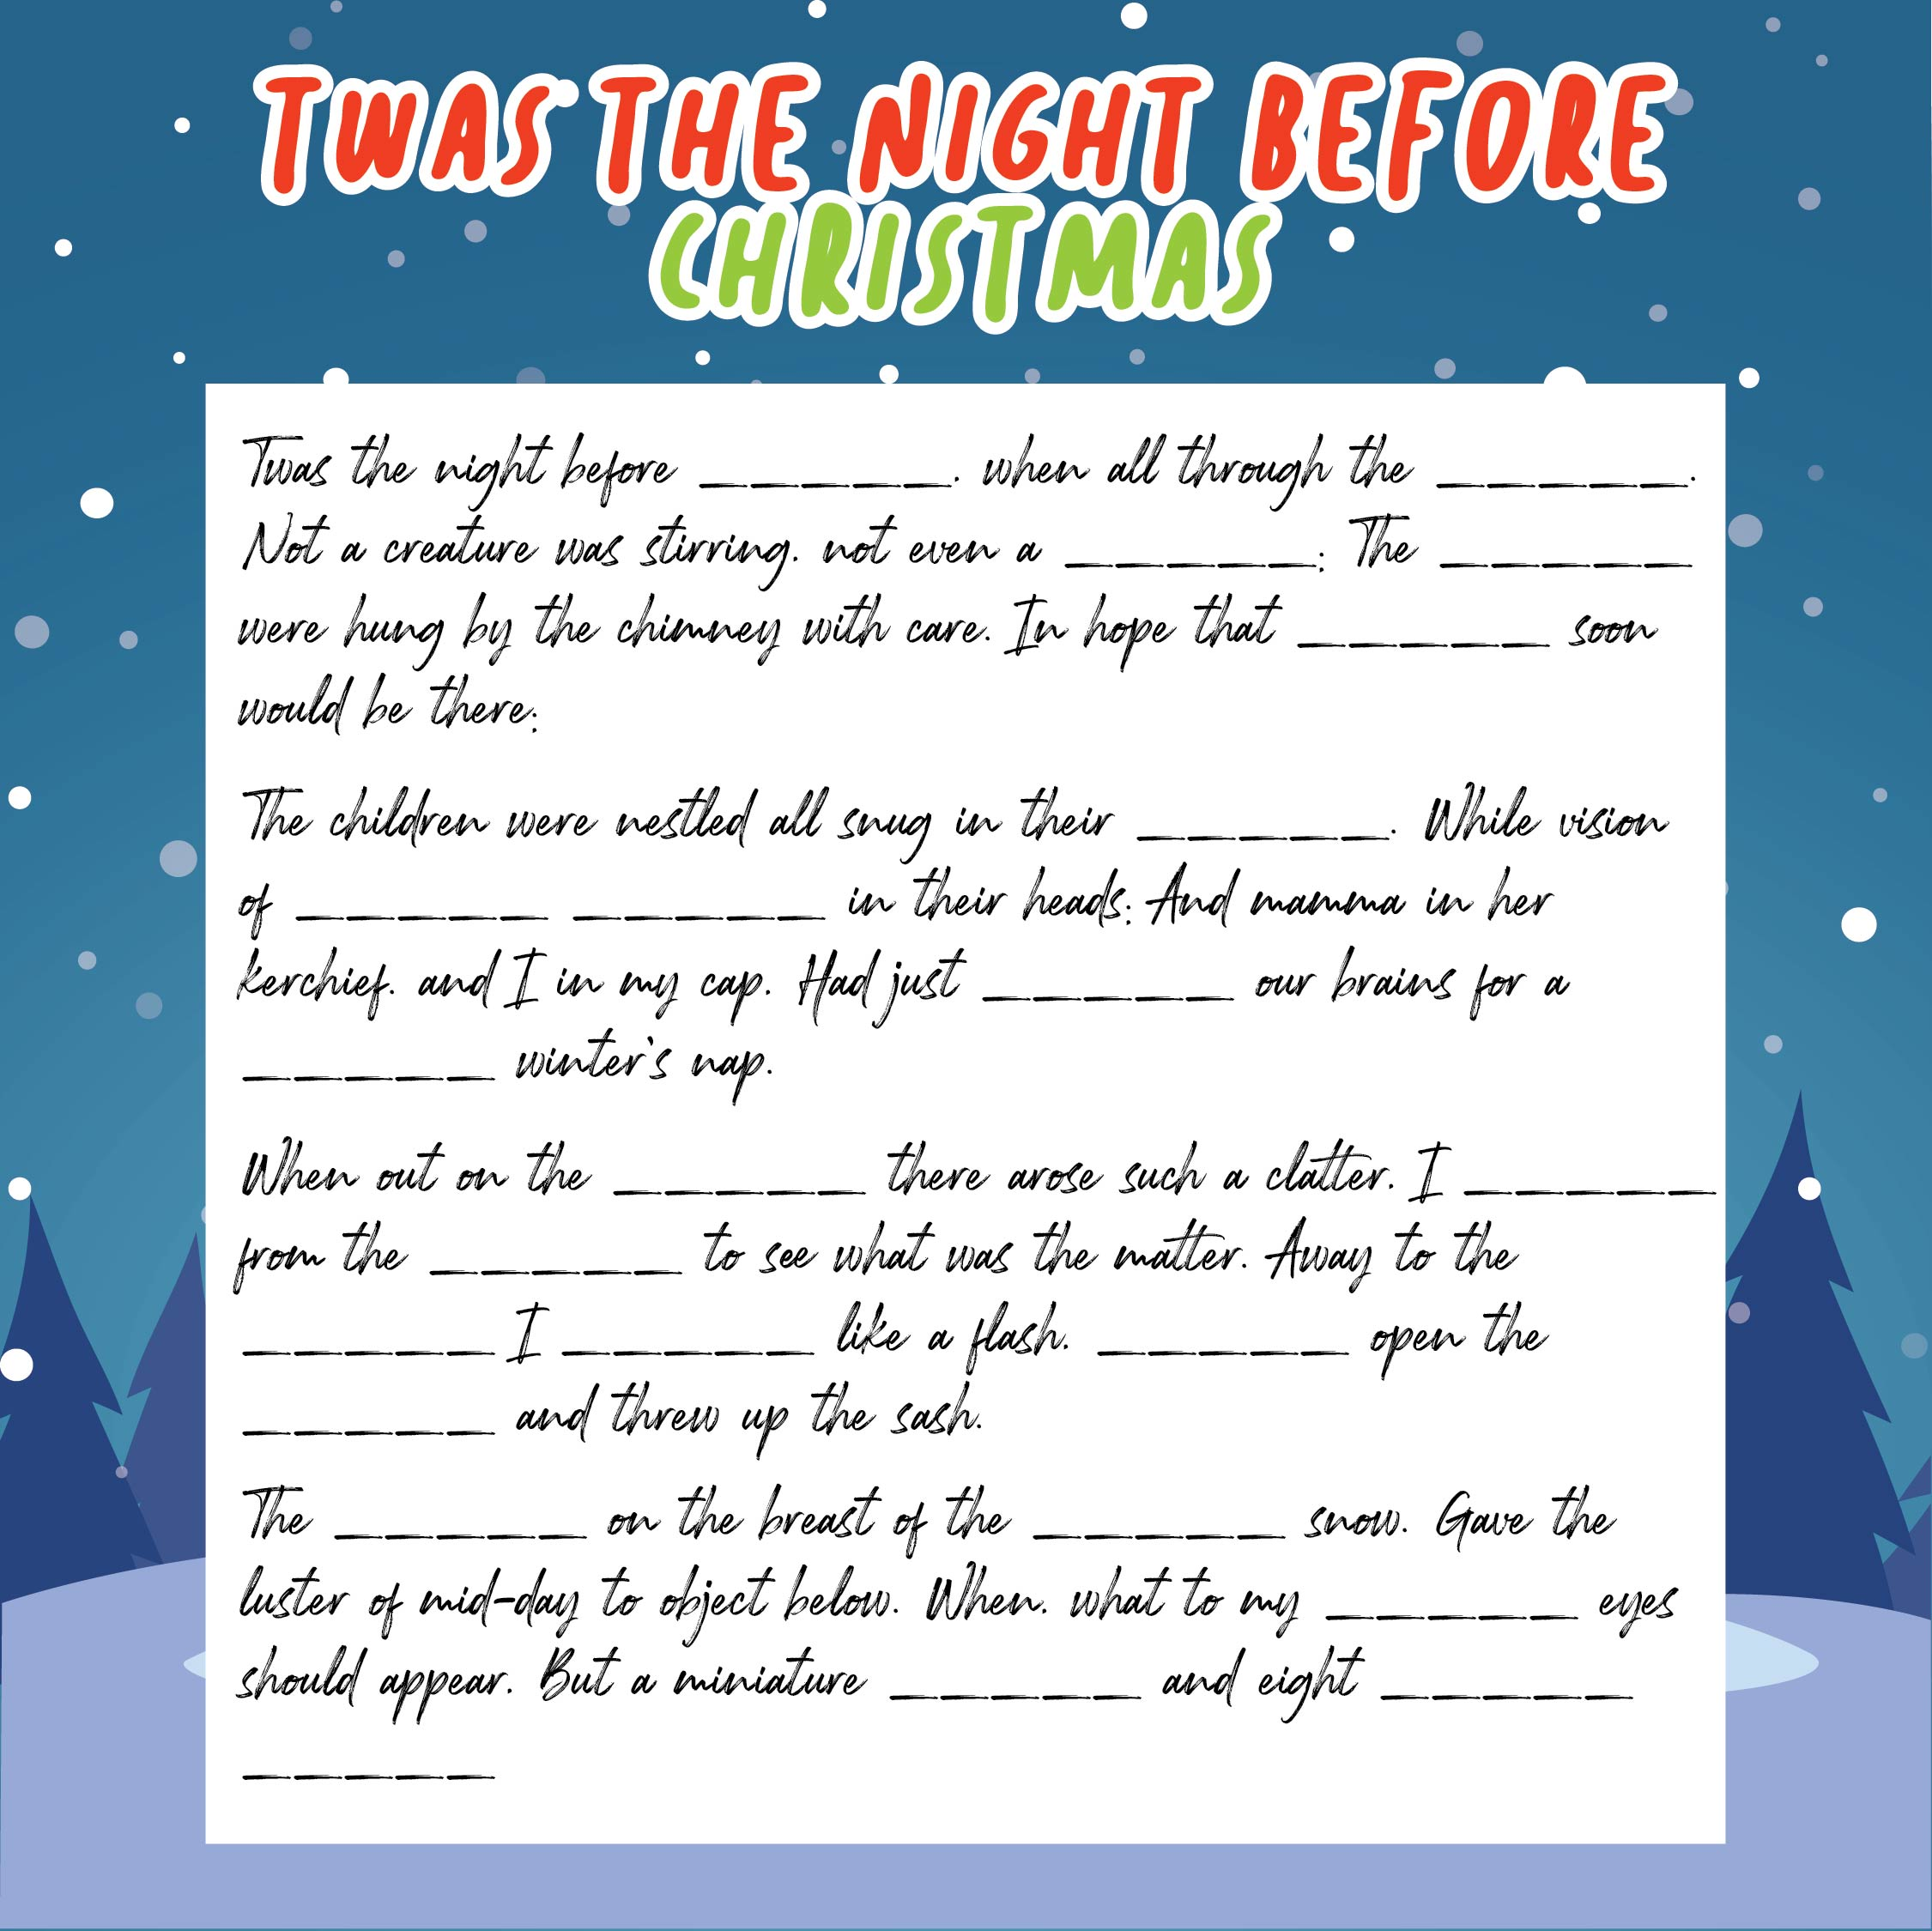 6 Images of Night Before Christmas Mad Libs Printable